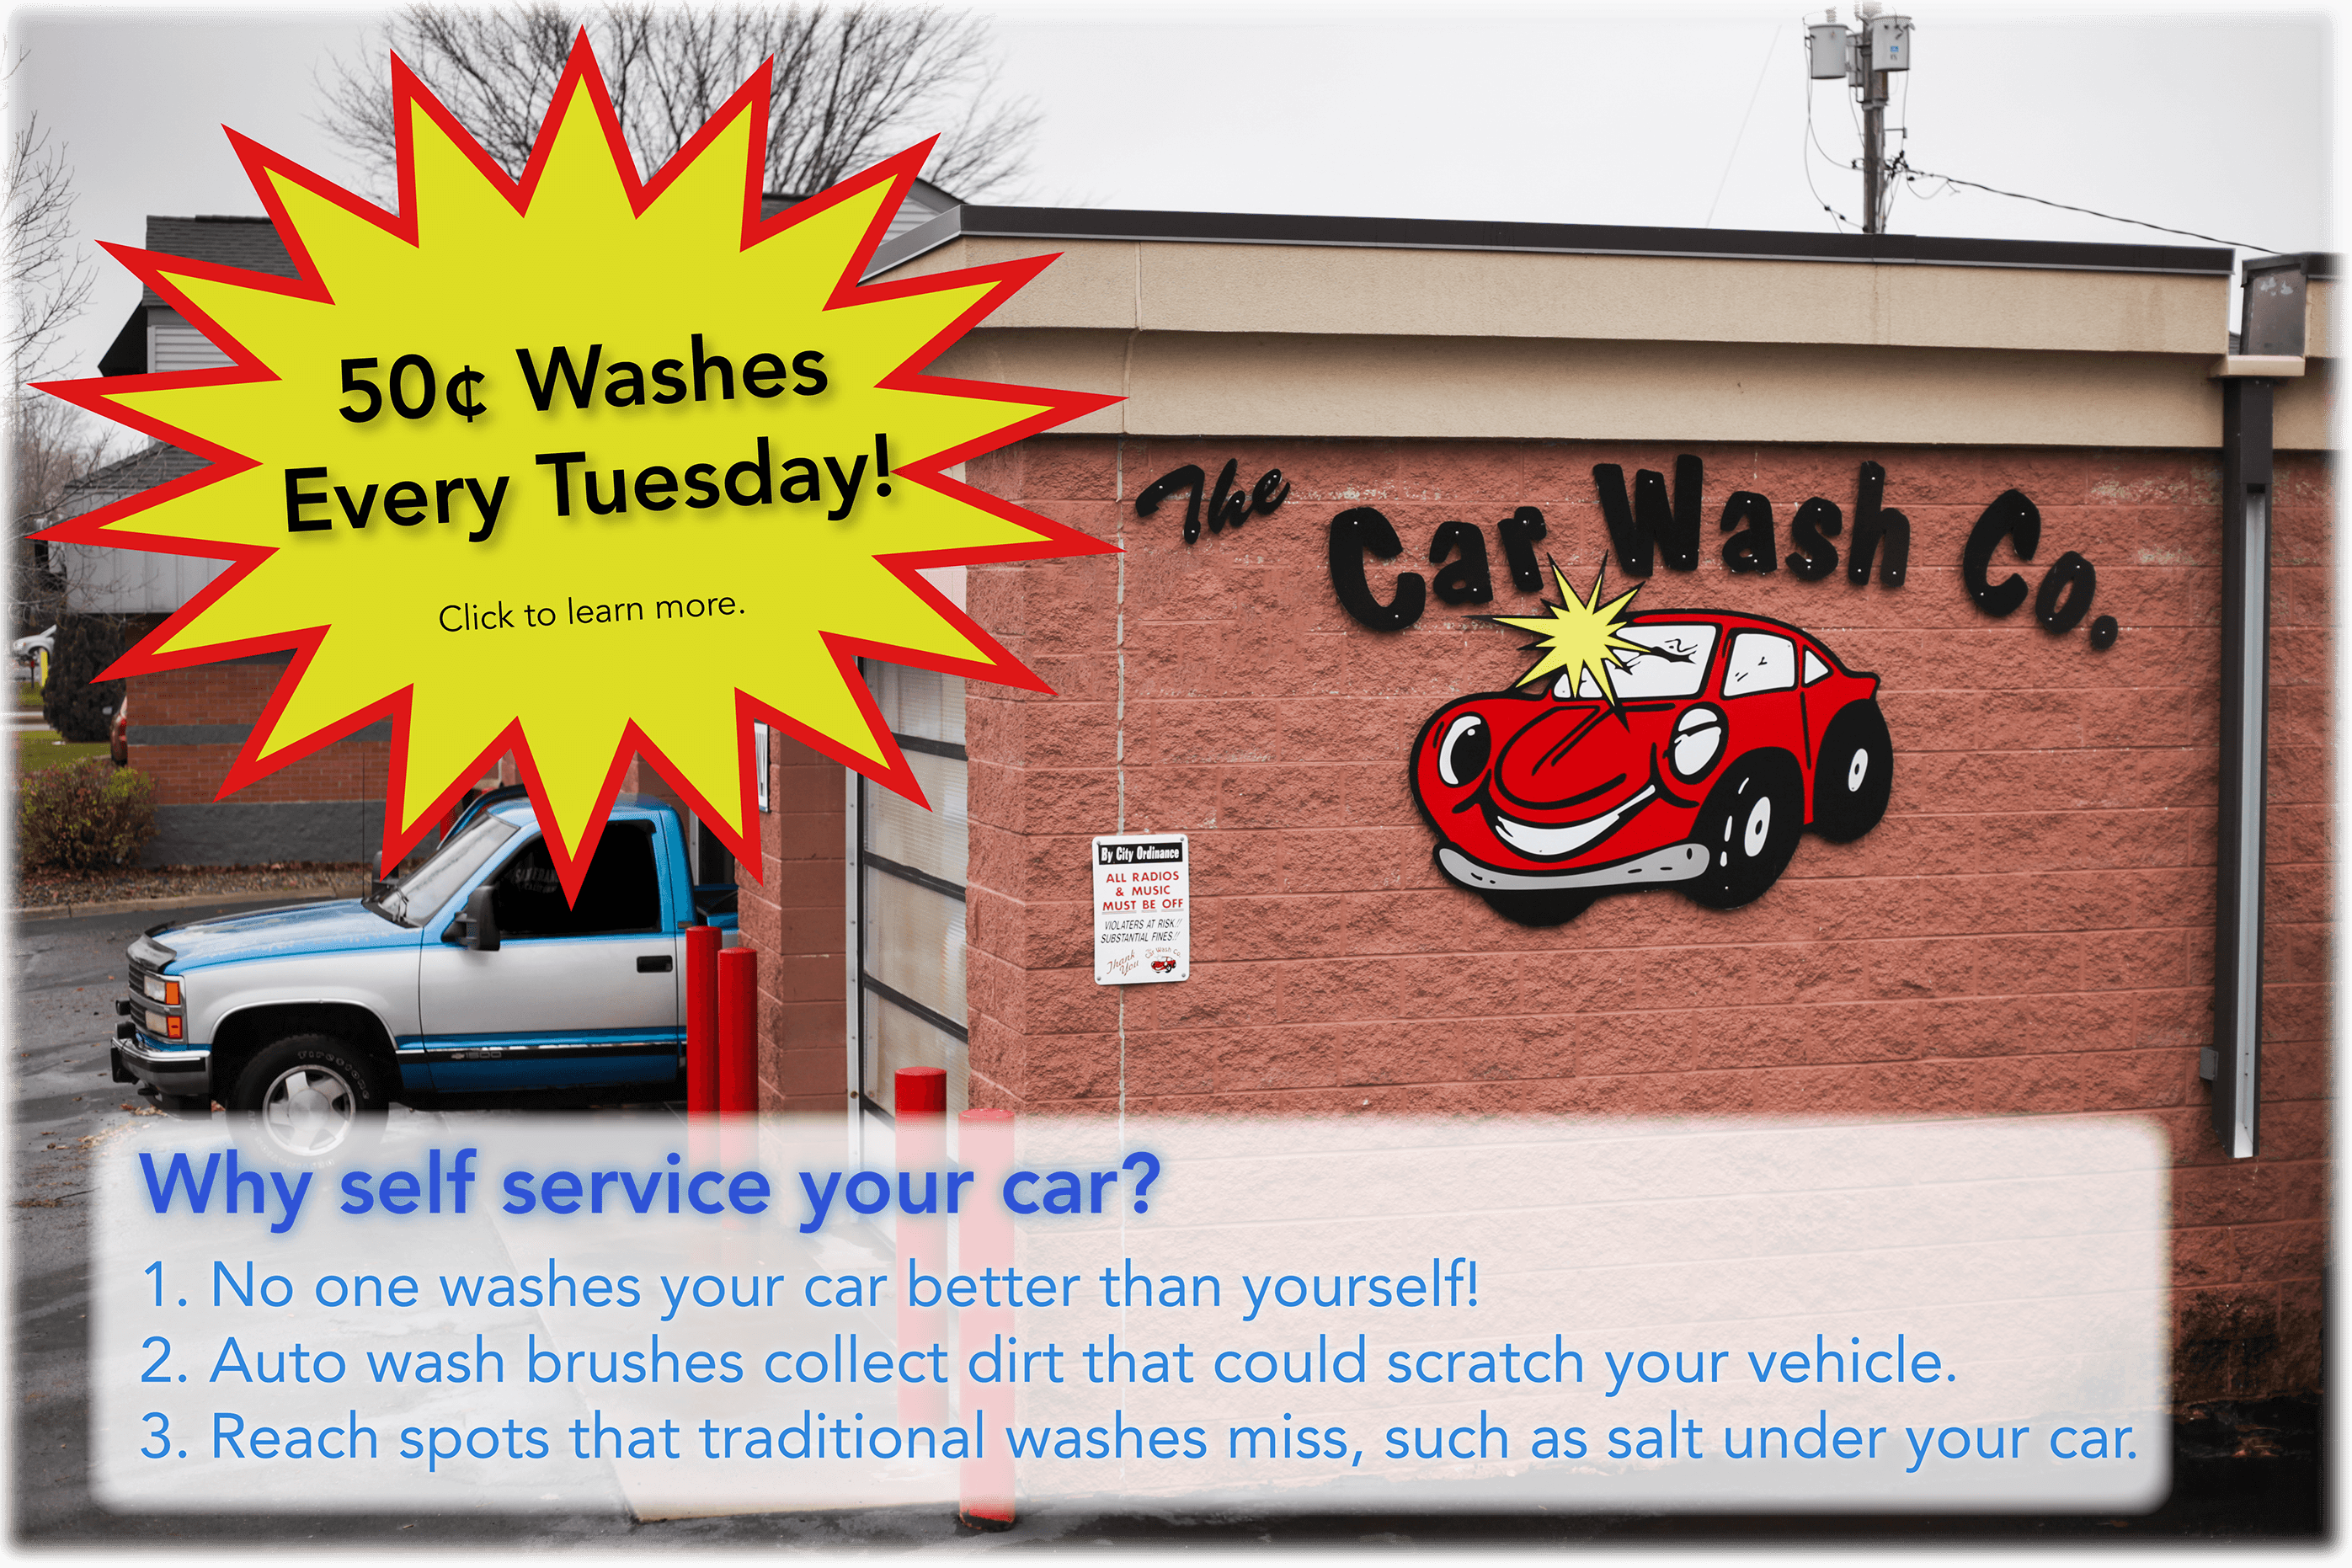 The car wash co self service car washes serving the minnesota metro home solutioingenieria